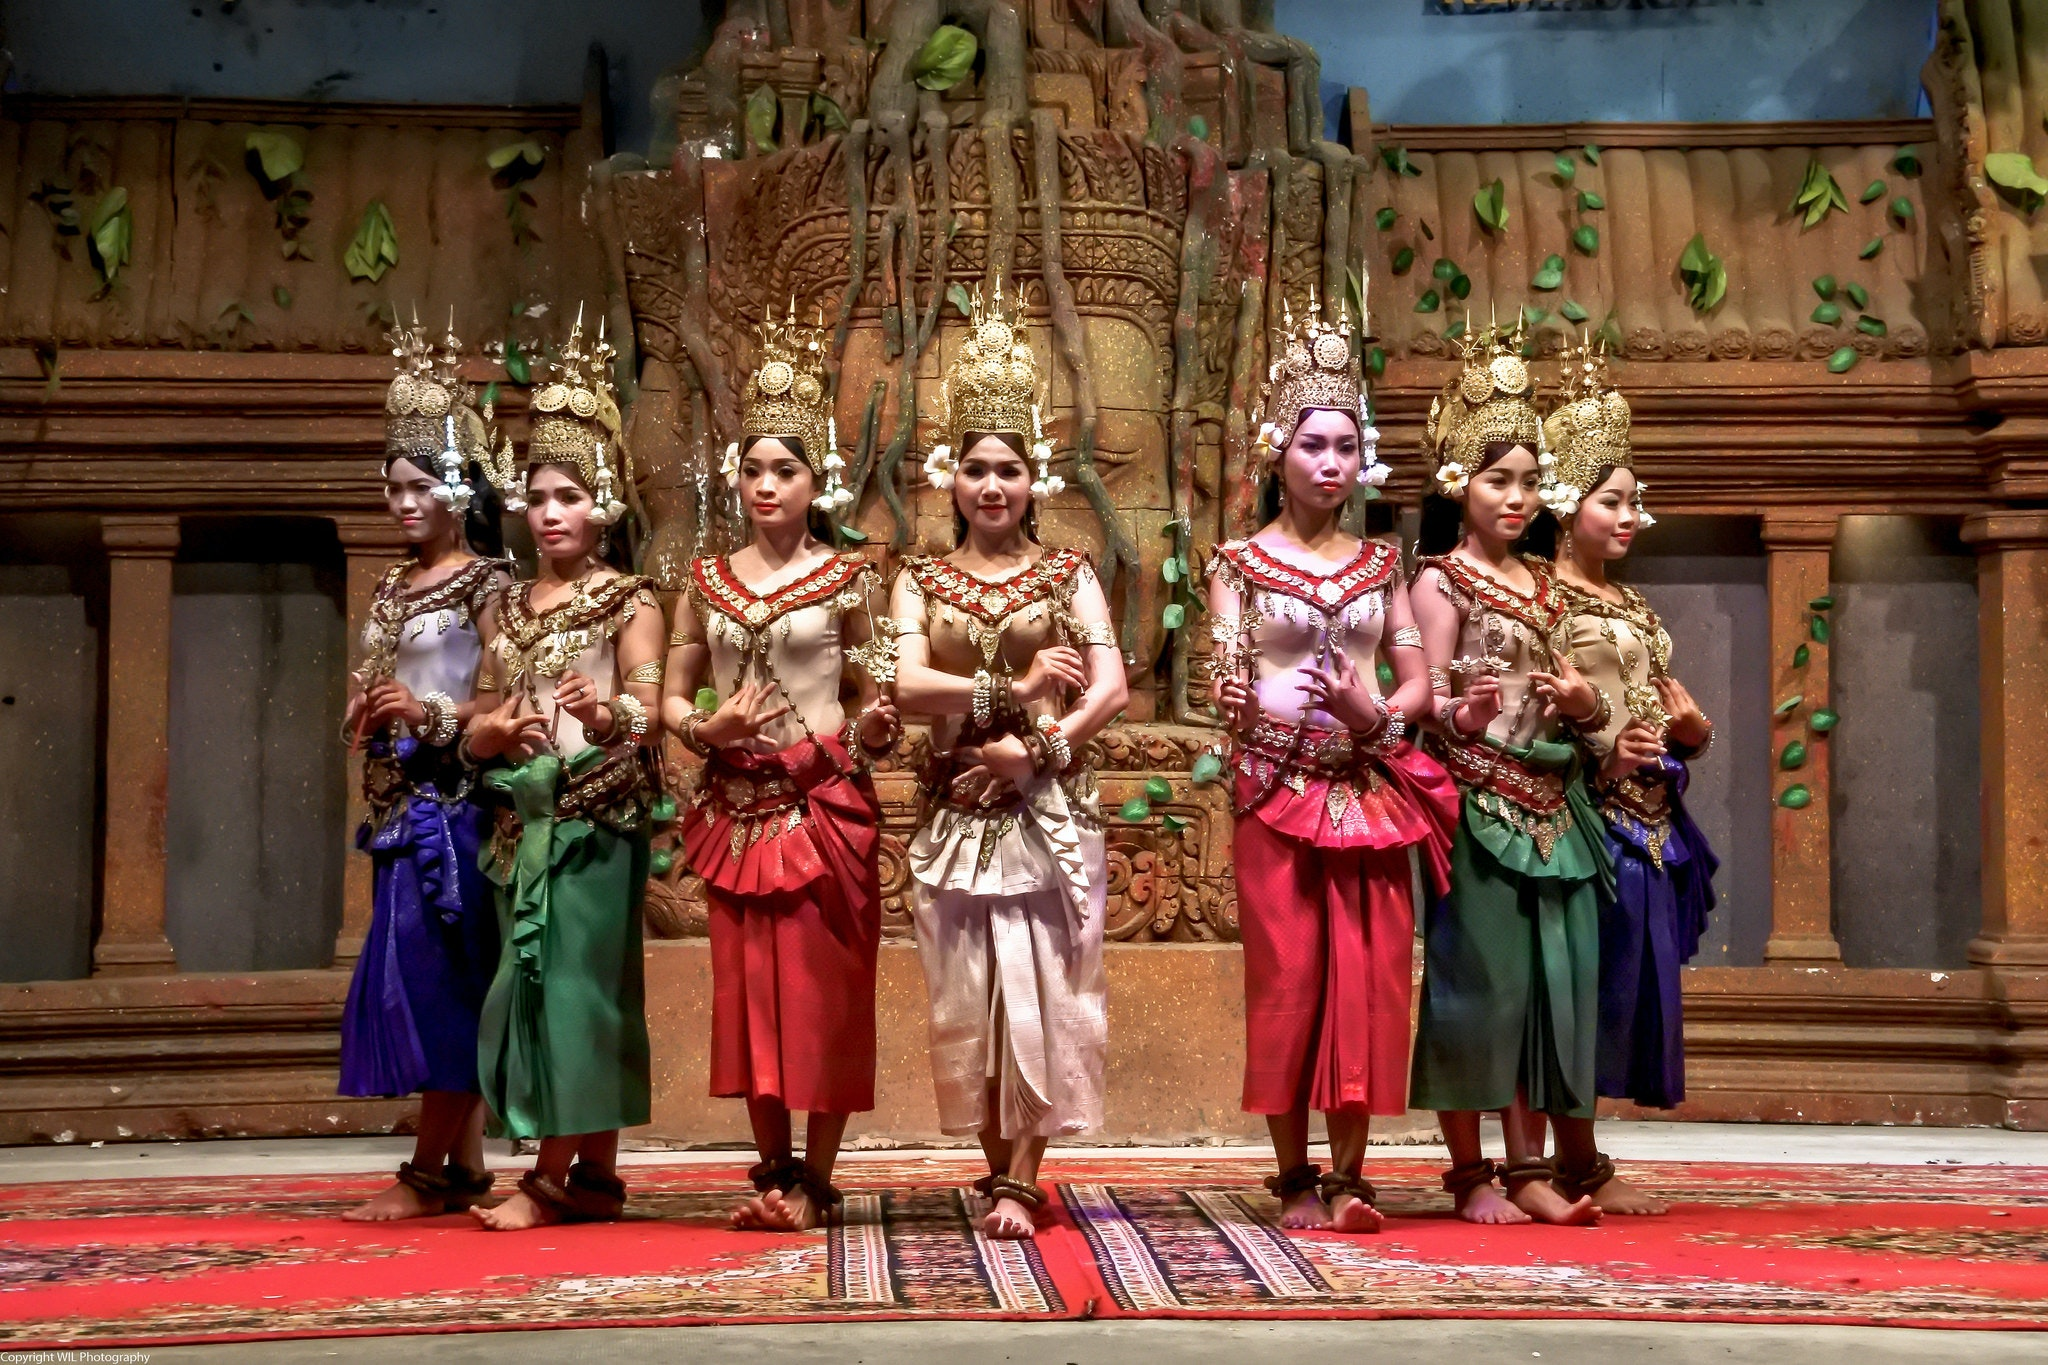 Apsara dancers in Siem Reap. Photo by WIL.